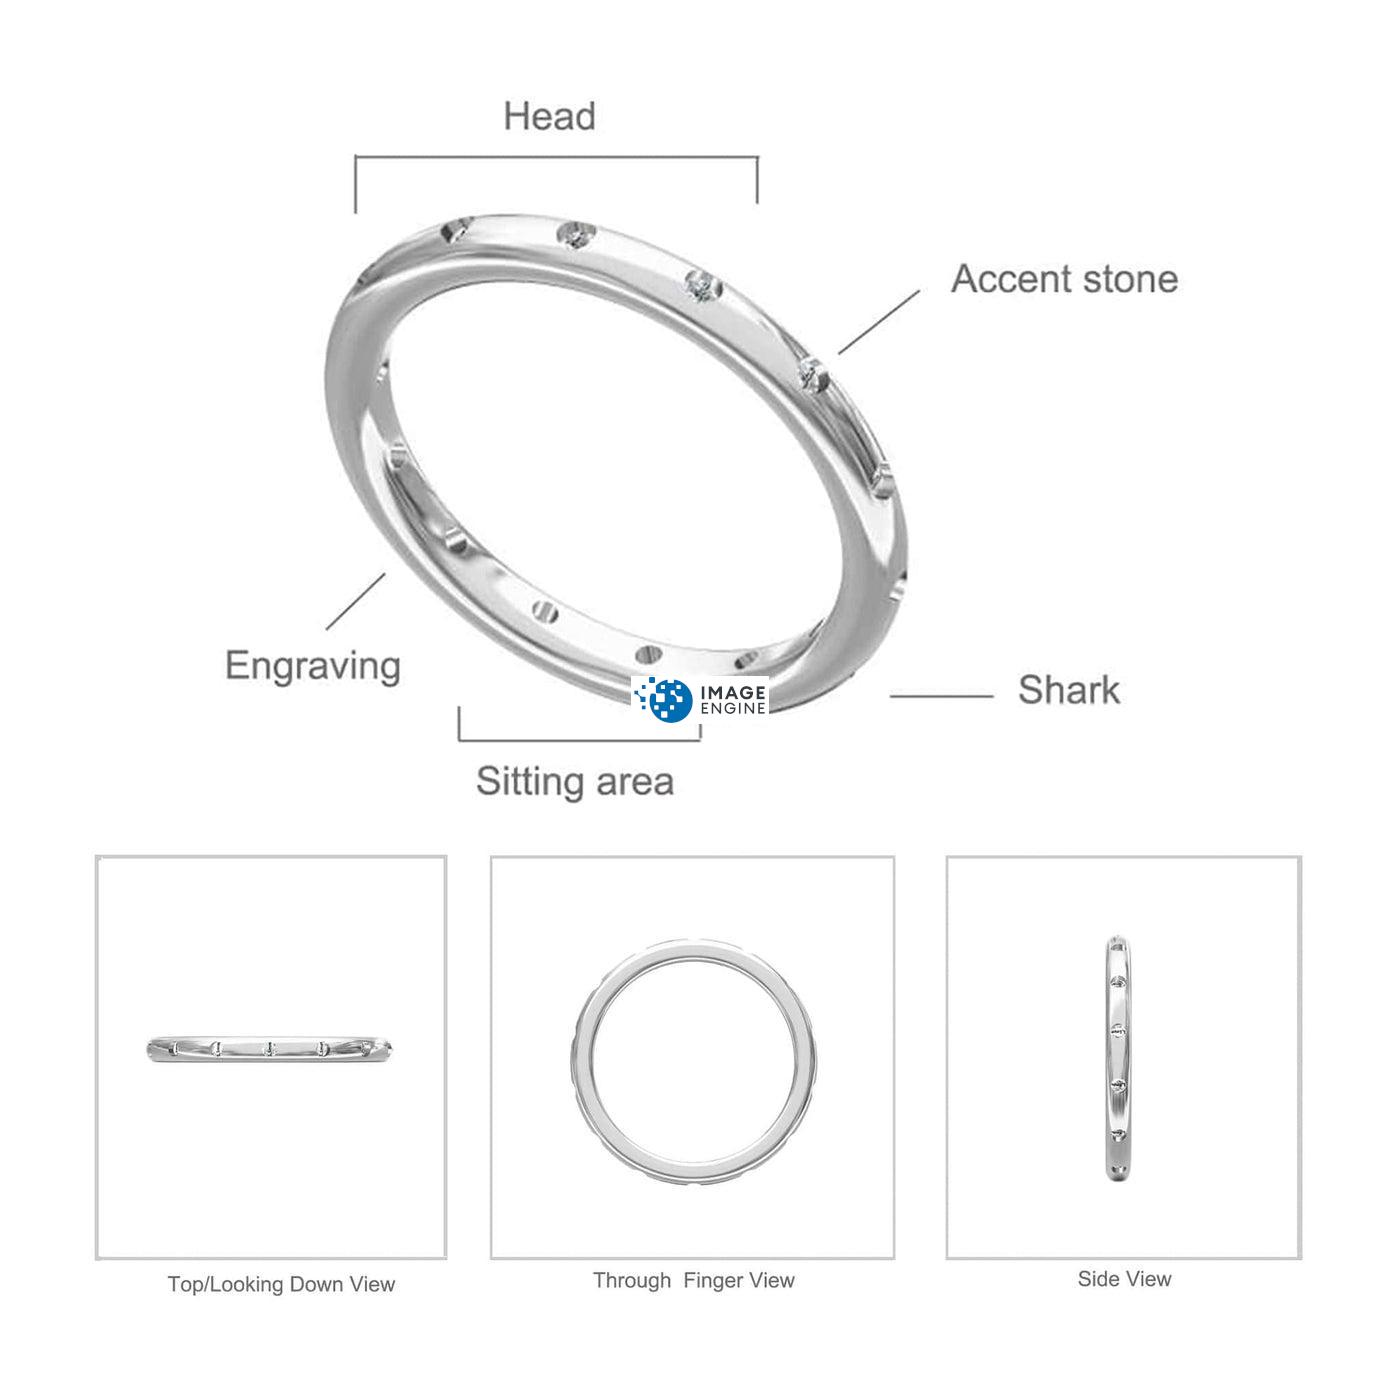 Droplet Ring Diagram and Specifications